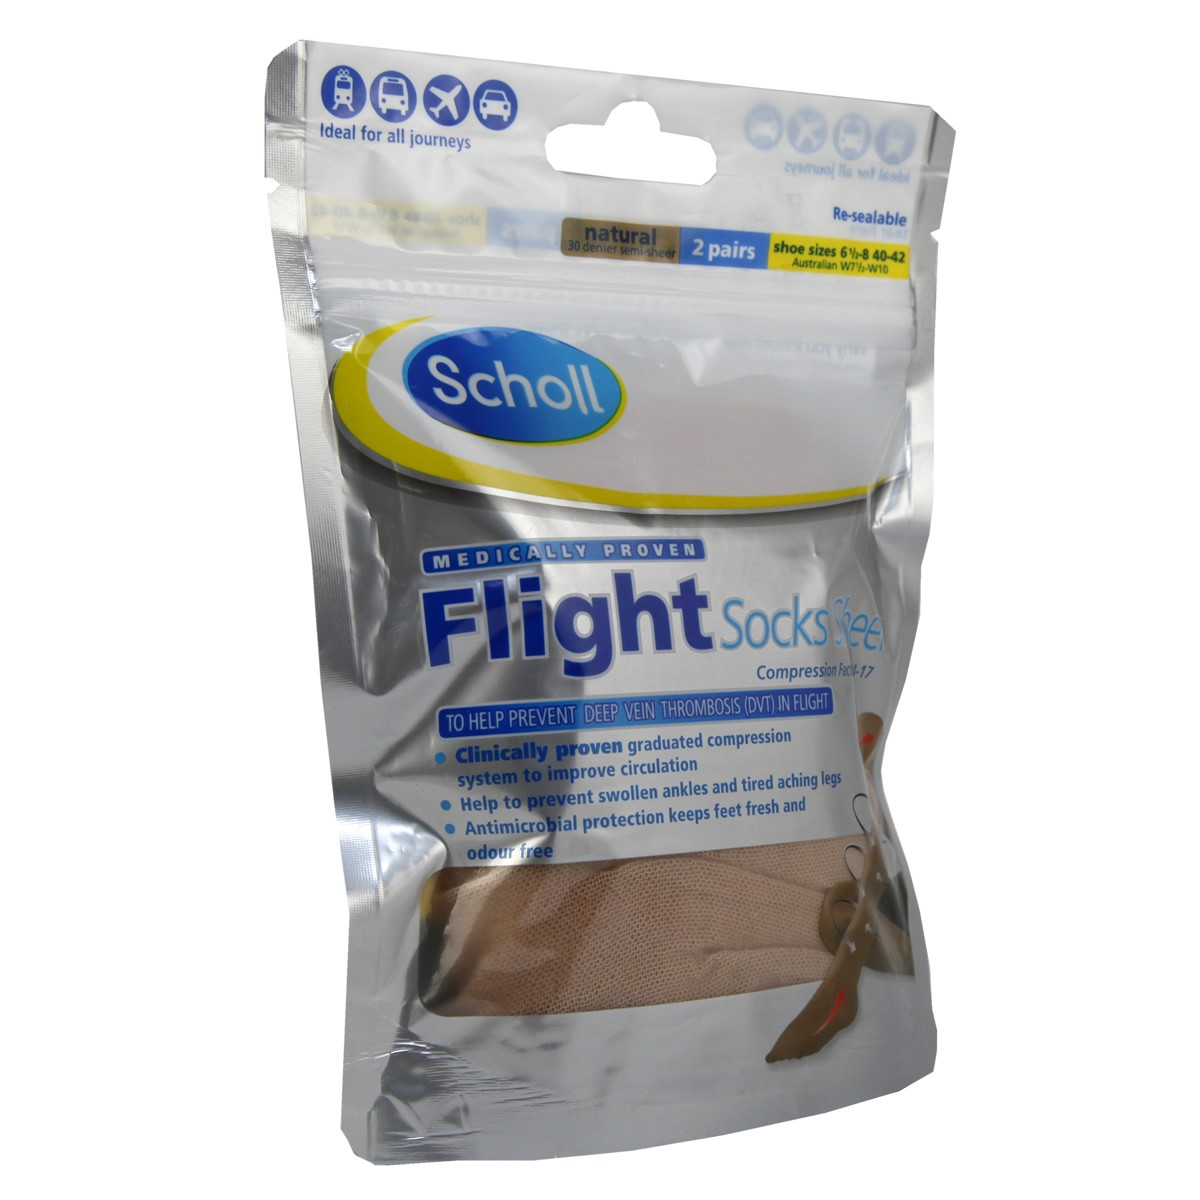 Scholl Flight Socks Sheer 6.5-8/ Natural